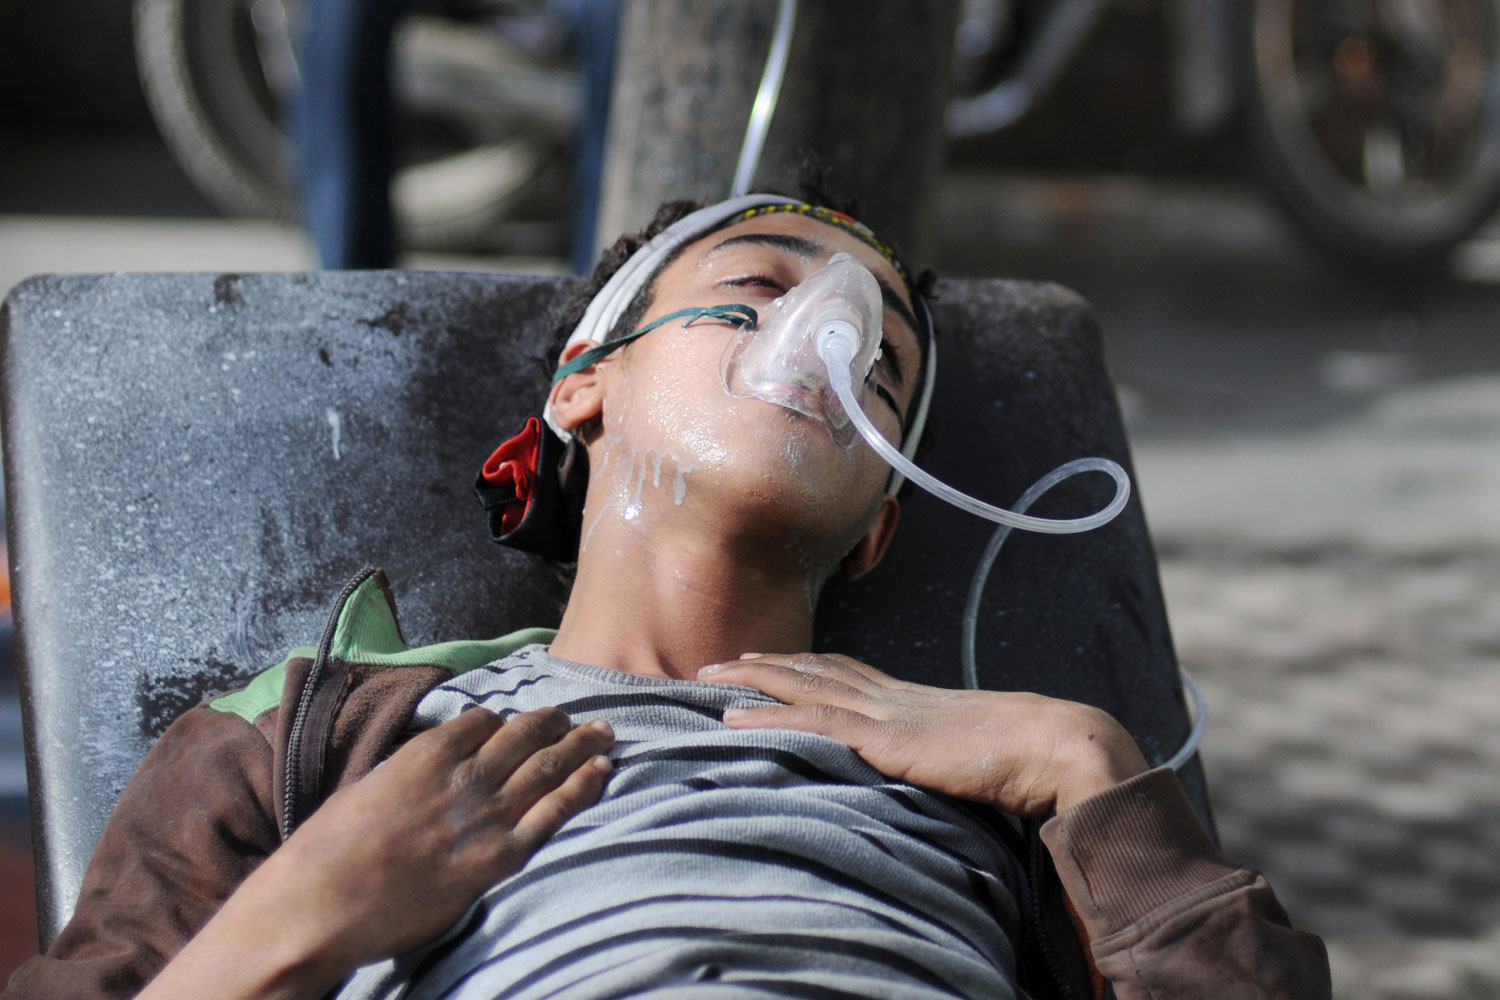 February 3, 2012. An Egyptian protester injured after clashes with the police near the interior ministry in downtown Cairo.